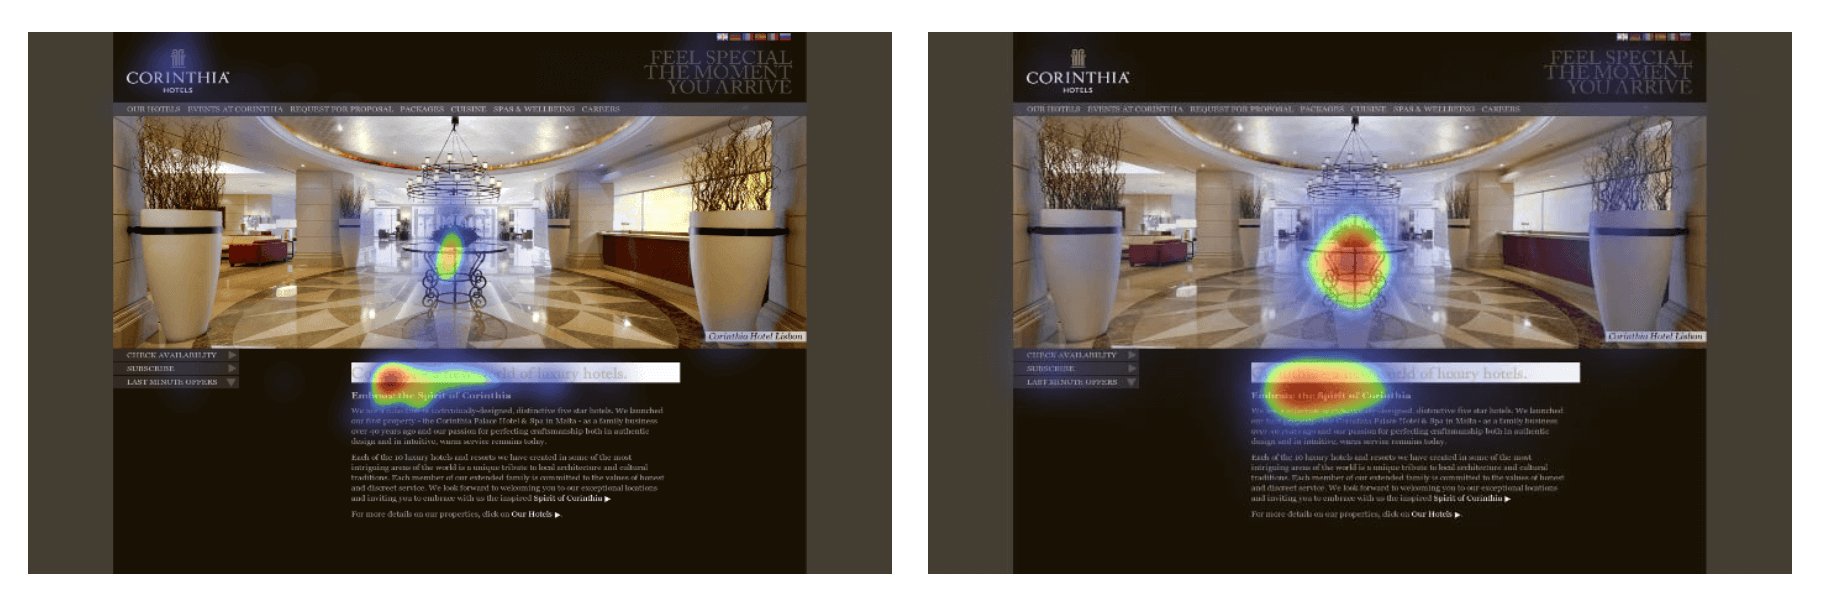 Image of two website heatmaps compared with predictive versus traditional eye tracking technology used